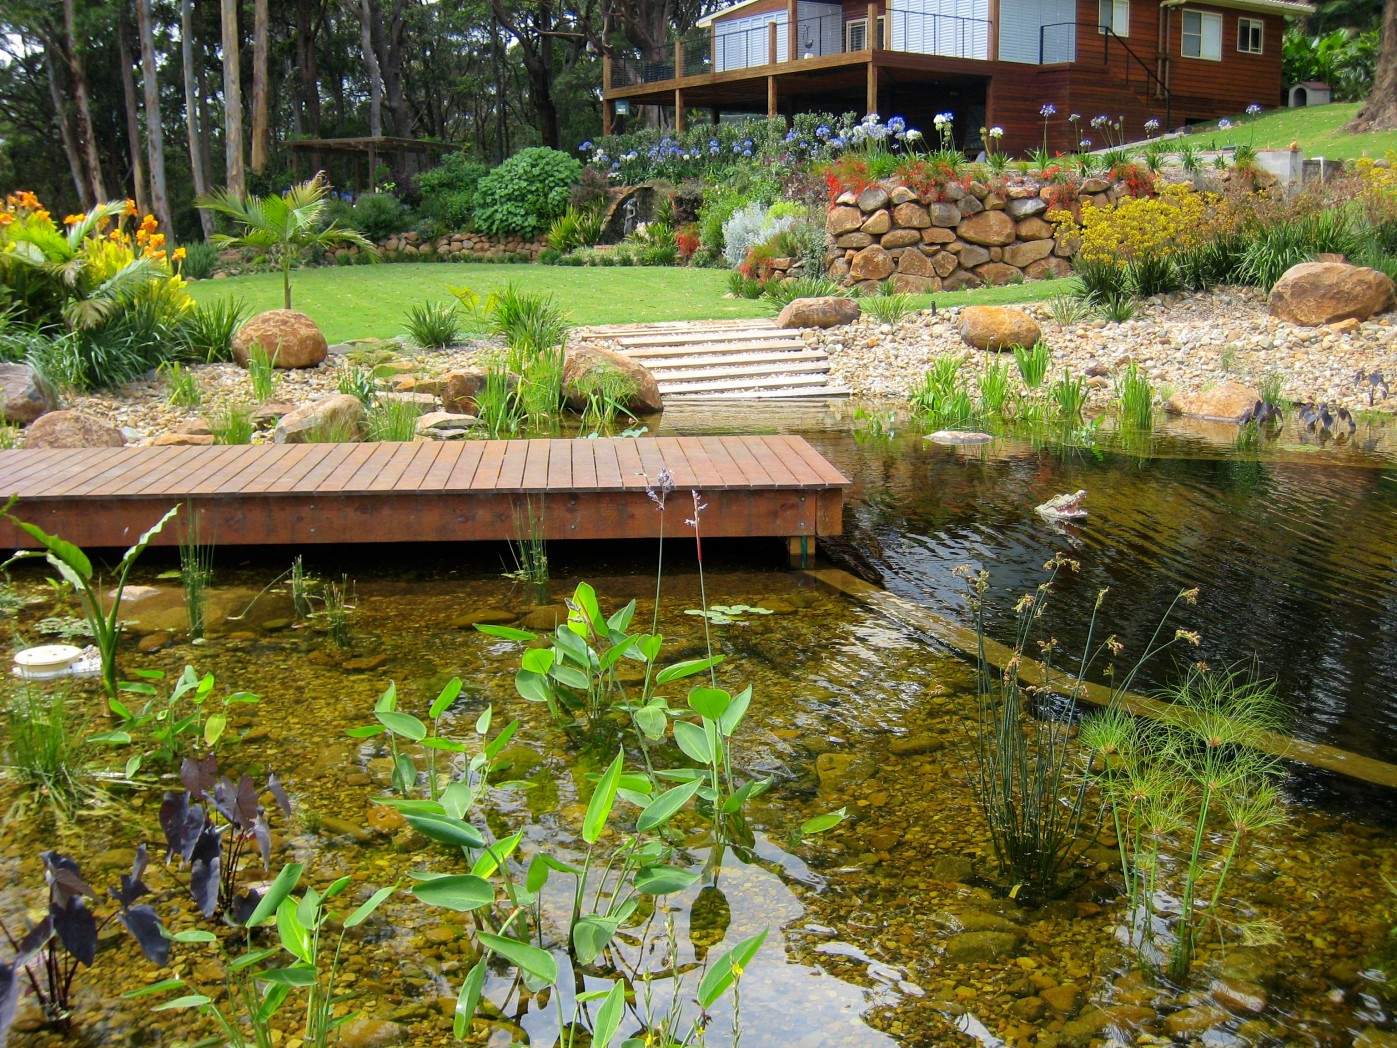 Natural Swimming Pool - After 3